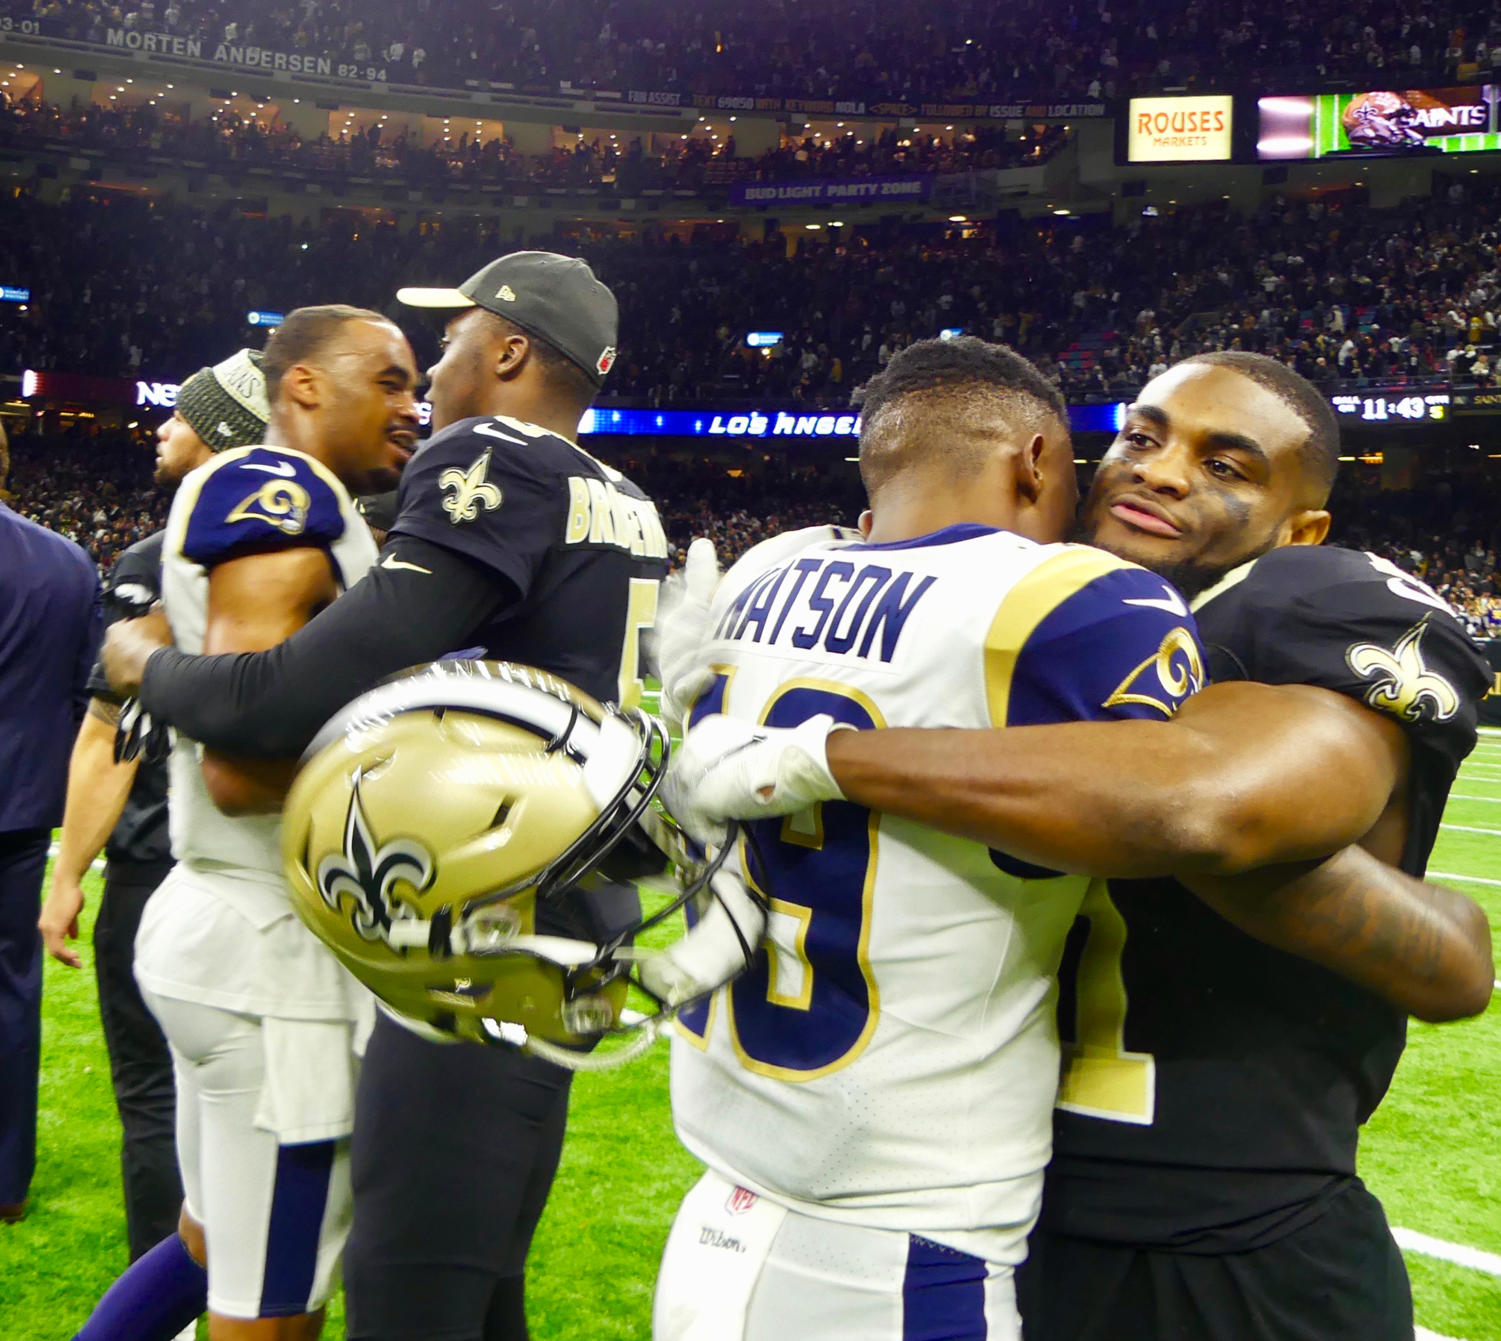 Saints players embrace Rams players after their defeat in the NFC Championship. Photo credit: Olivia Ledet